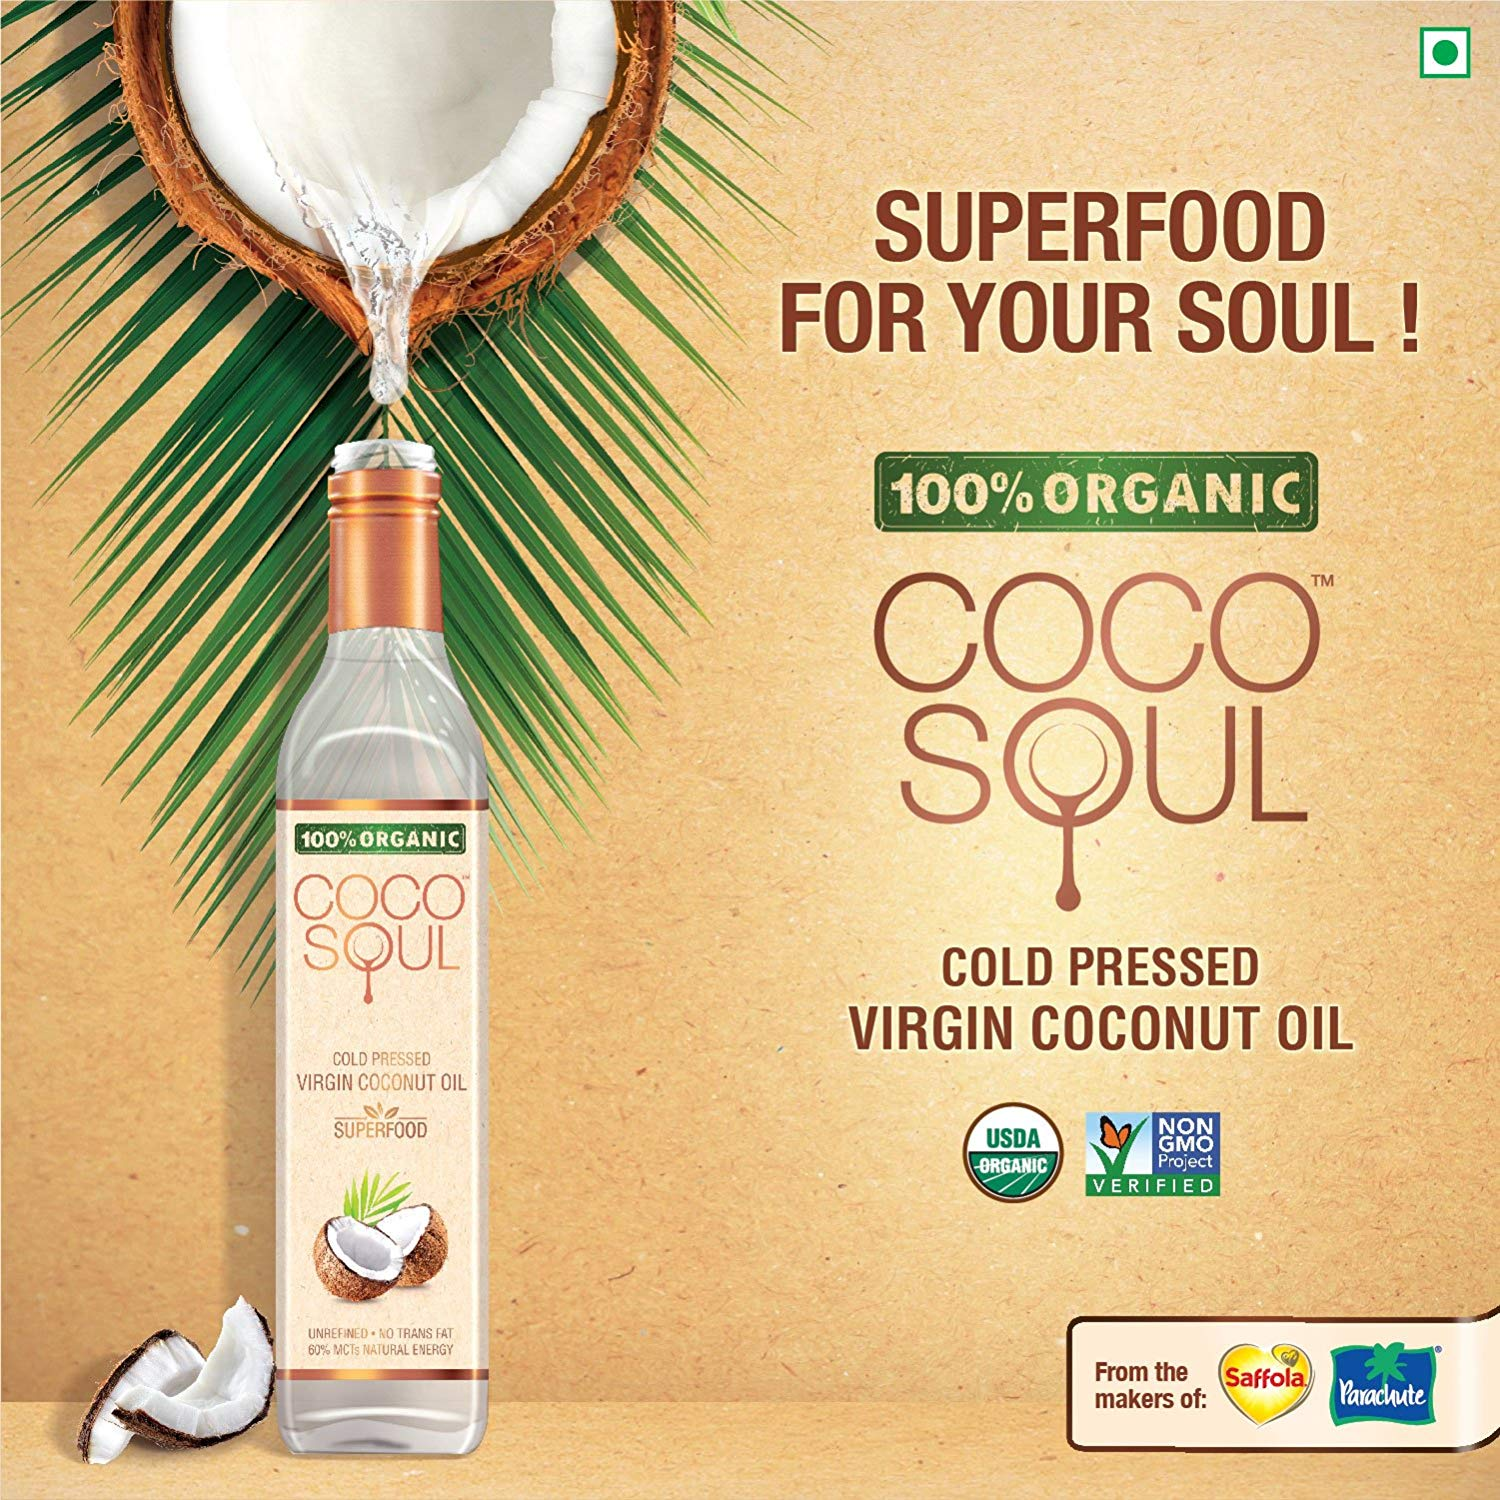 Marico unveiled Coco Soul Cold Pressed Virgin Coconut Oil